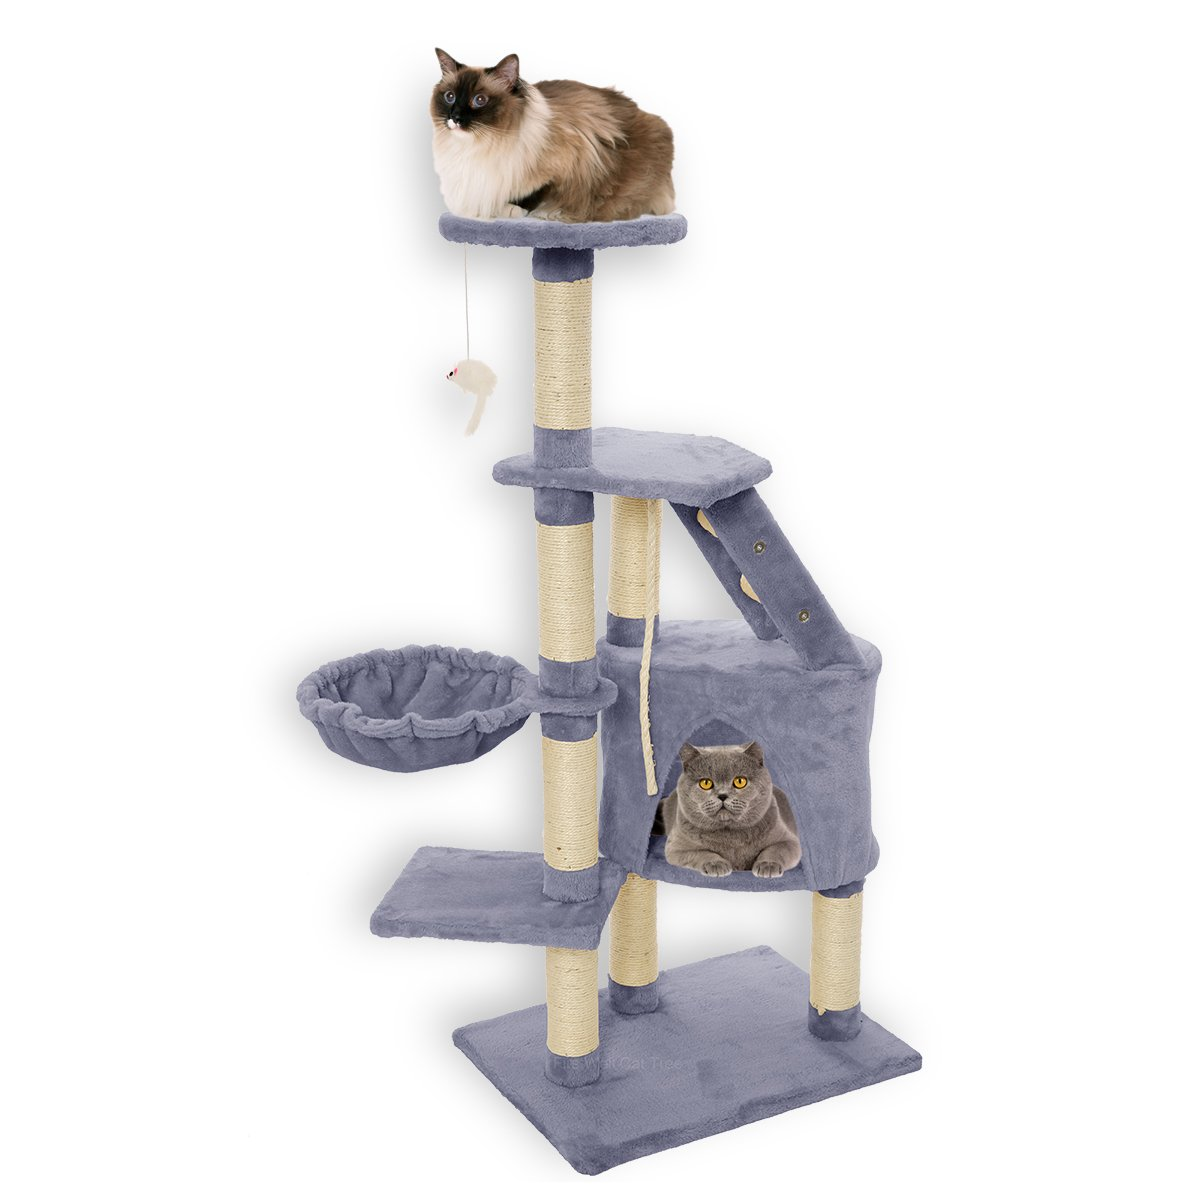 FirstWell Cat Trees - Kitty Condos Tower Furniture, Kitten Climb Stand, with Scratching Post, Natural Sisal Ropes, Hanging Toy, Perch, Nest, 47.25 Inches, Grey